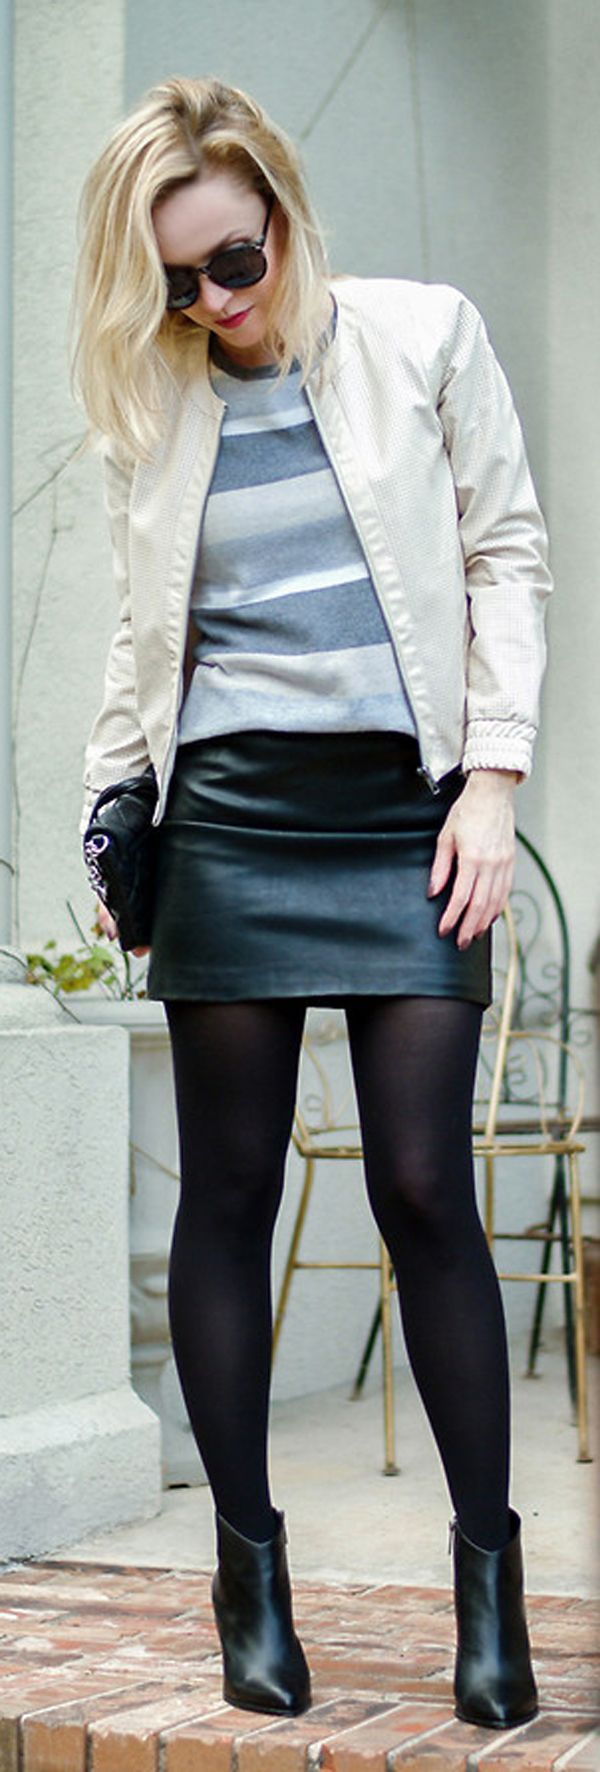 leather skirt for office